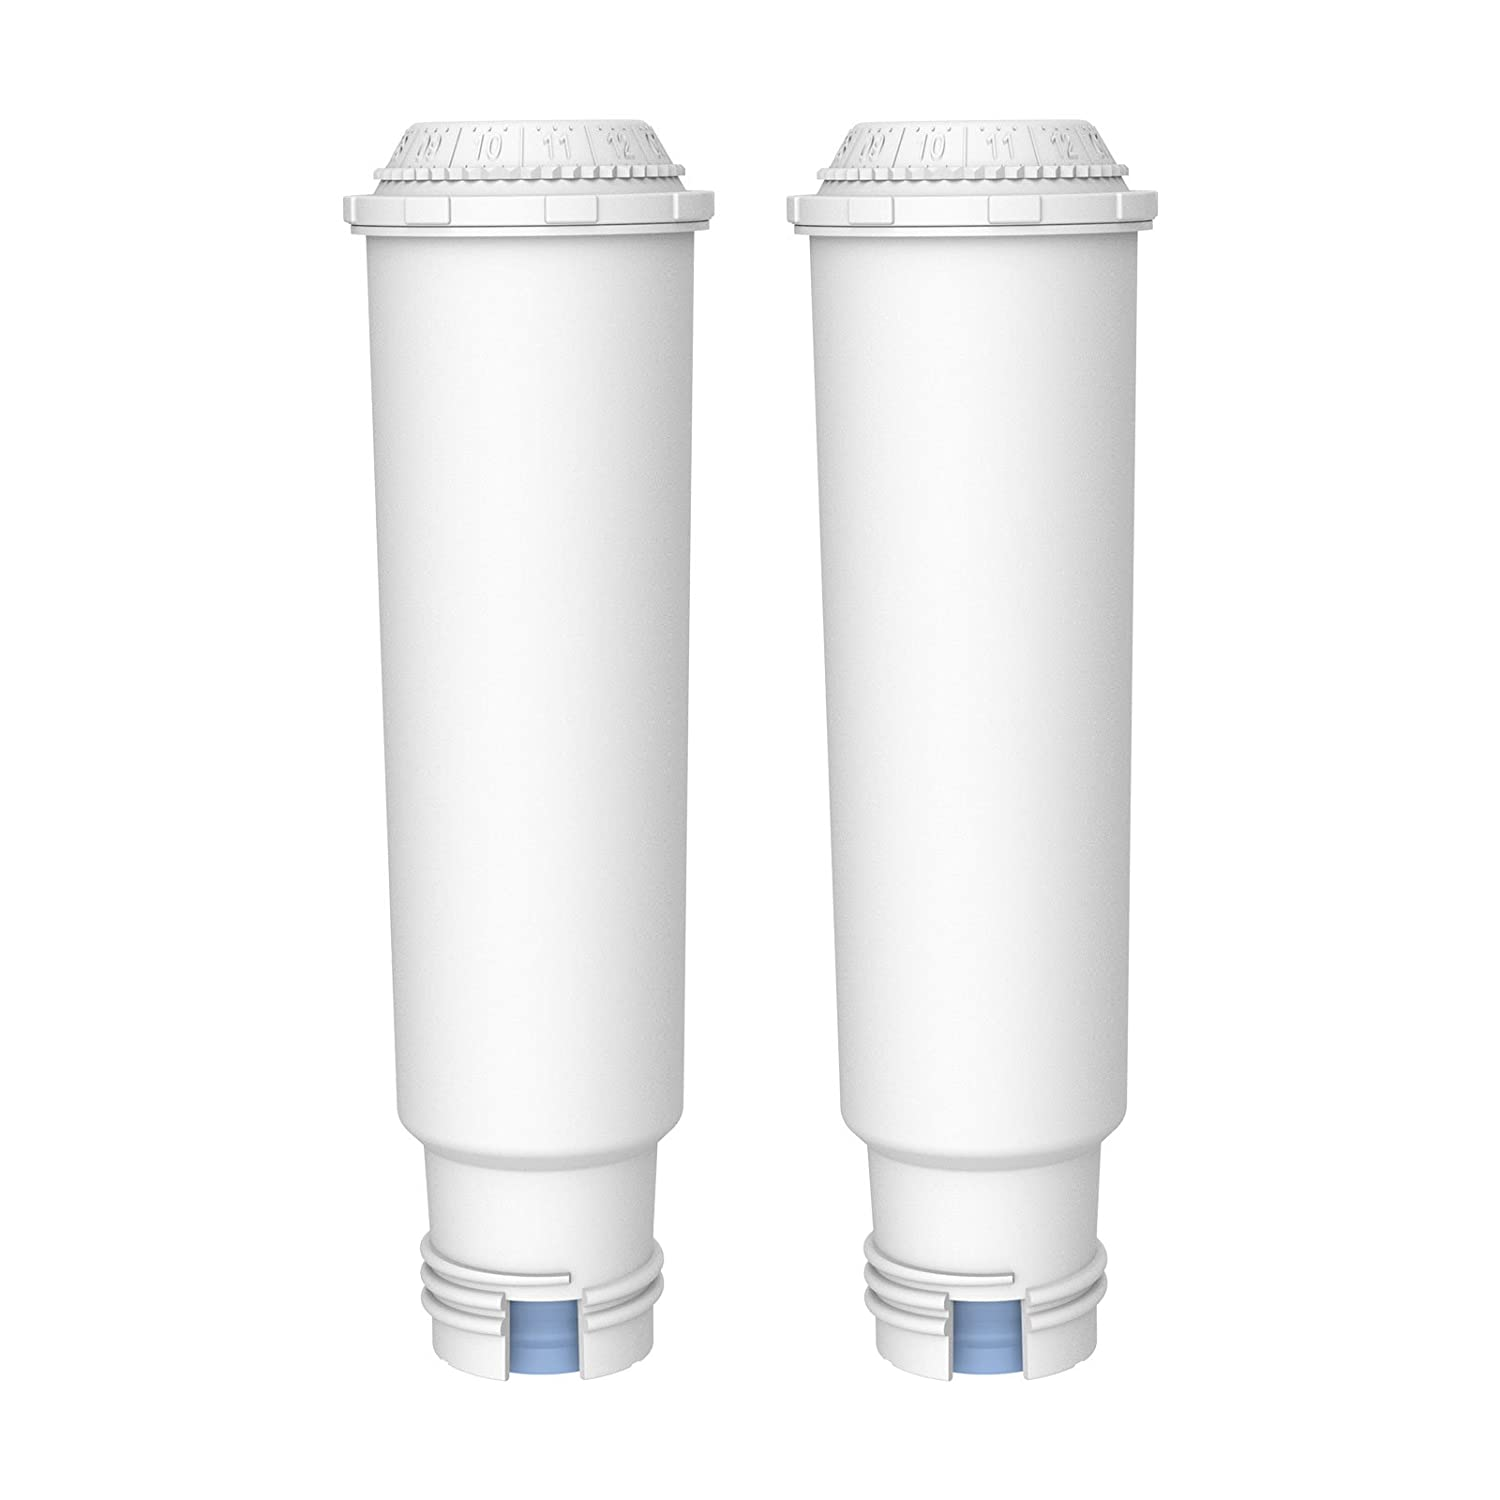 AquaCrest AQK-05 Compatible Coffee-Machine Water Filter Replacement for Krups Claris F088 - including various models of AEG, Bosch, Siemens, Gaggenau, Nivona, Melitta, Neff, Cocoon (2) EcoPure